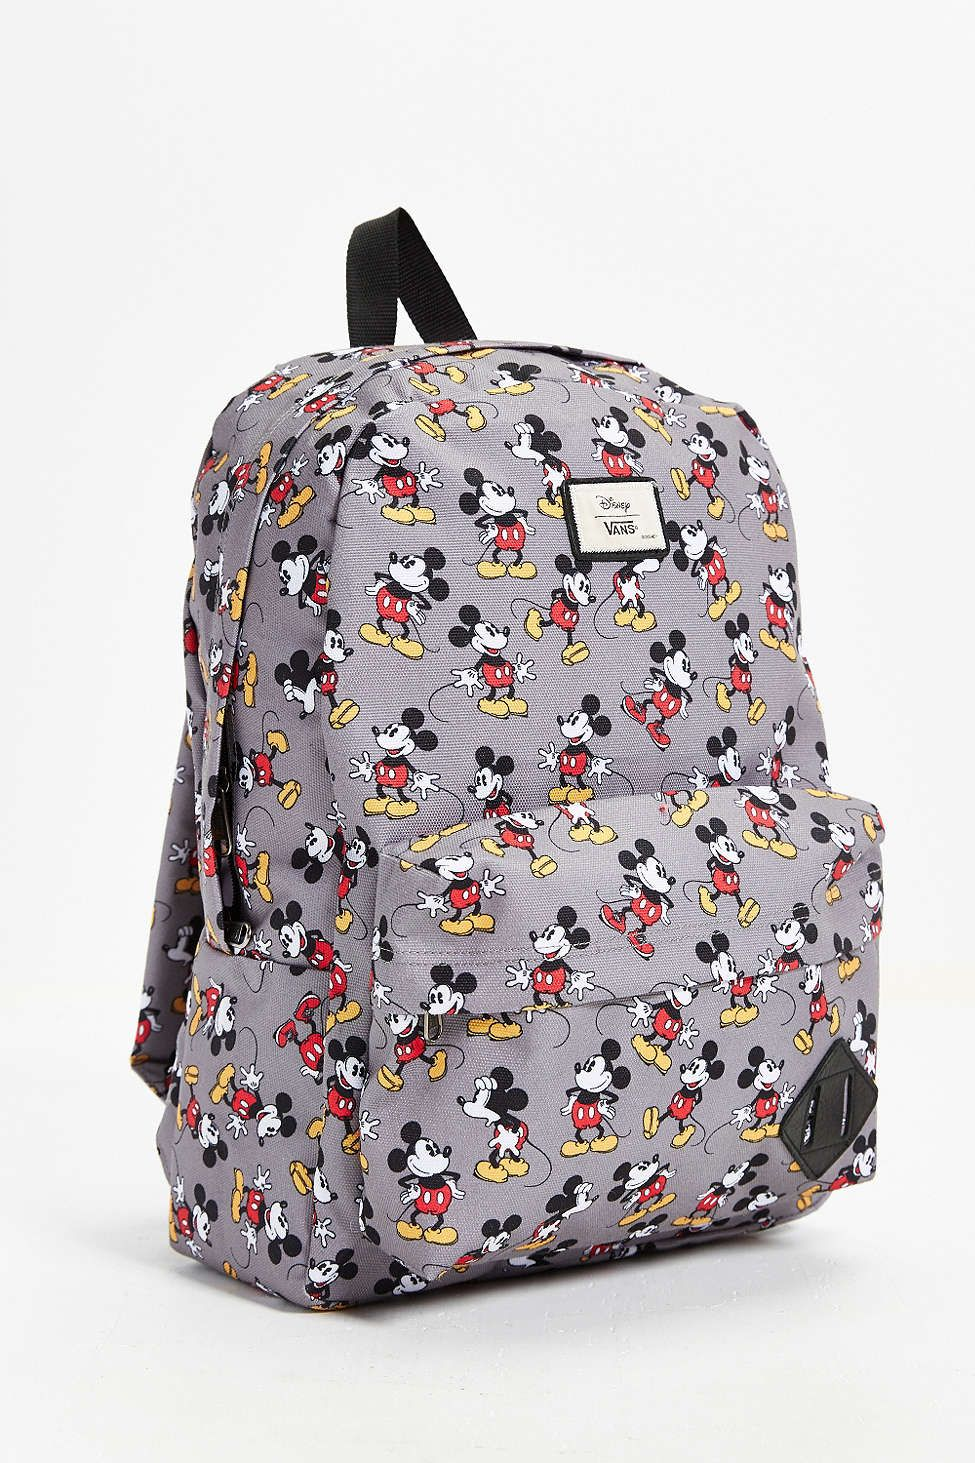 Vans Disney Old Skool II Backpack  7312dde4b4add